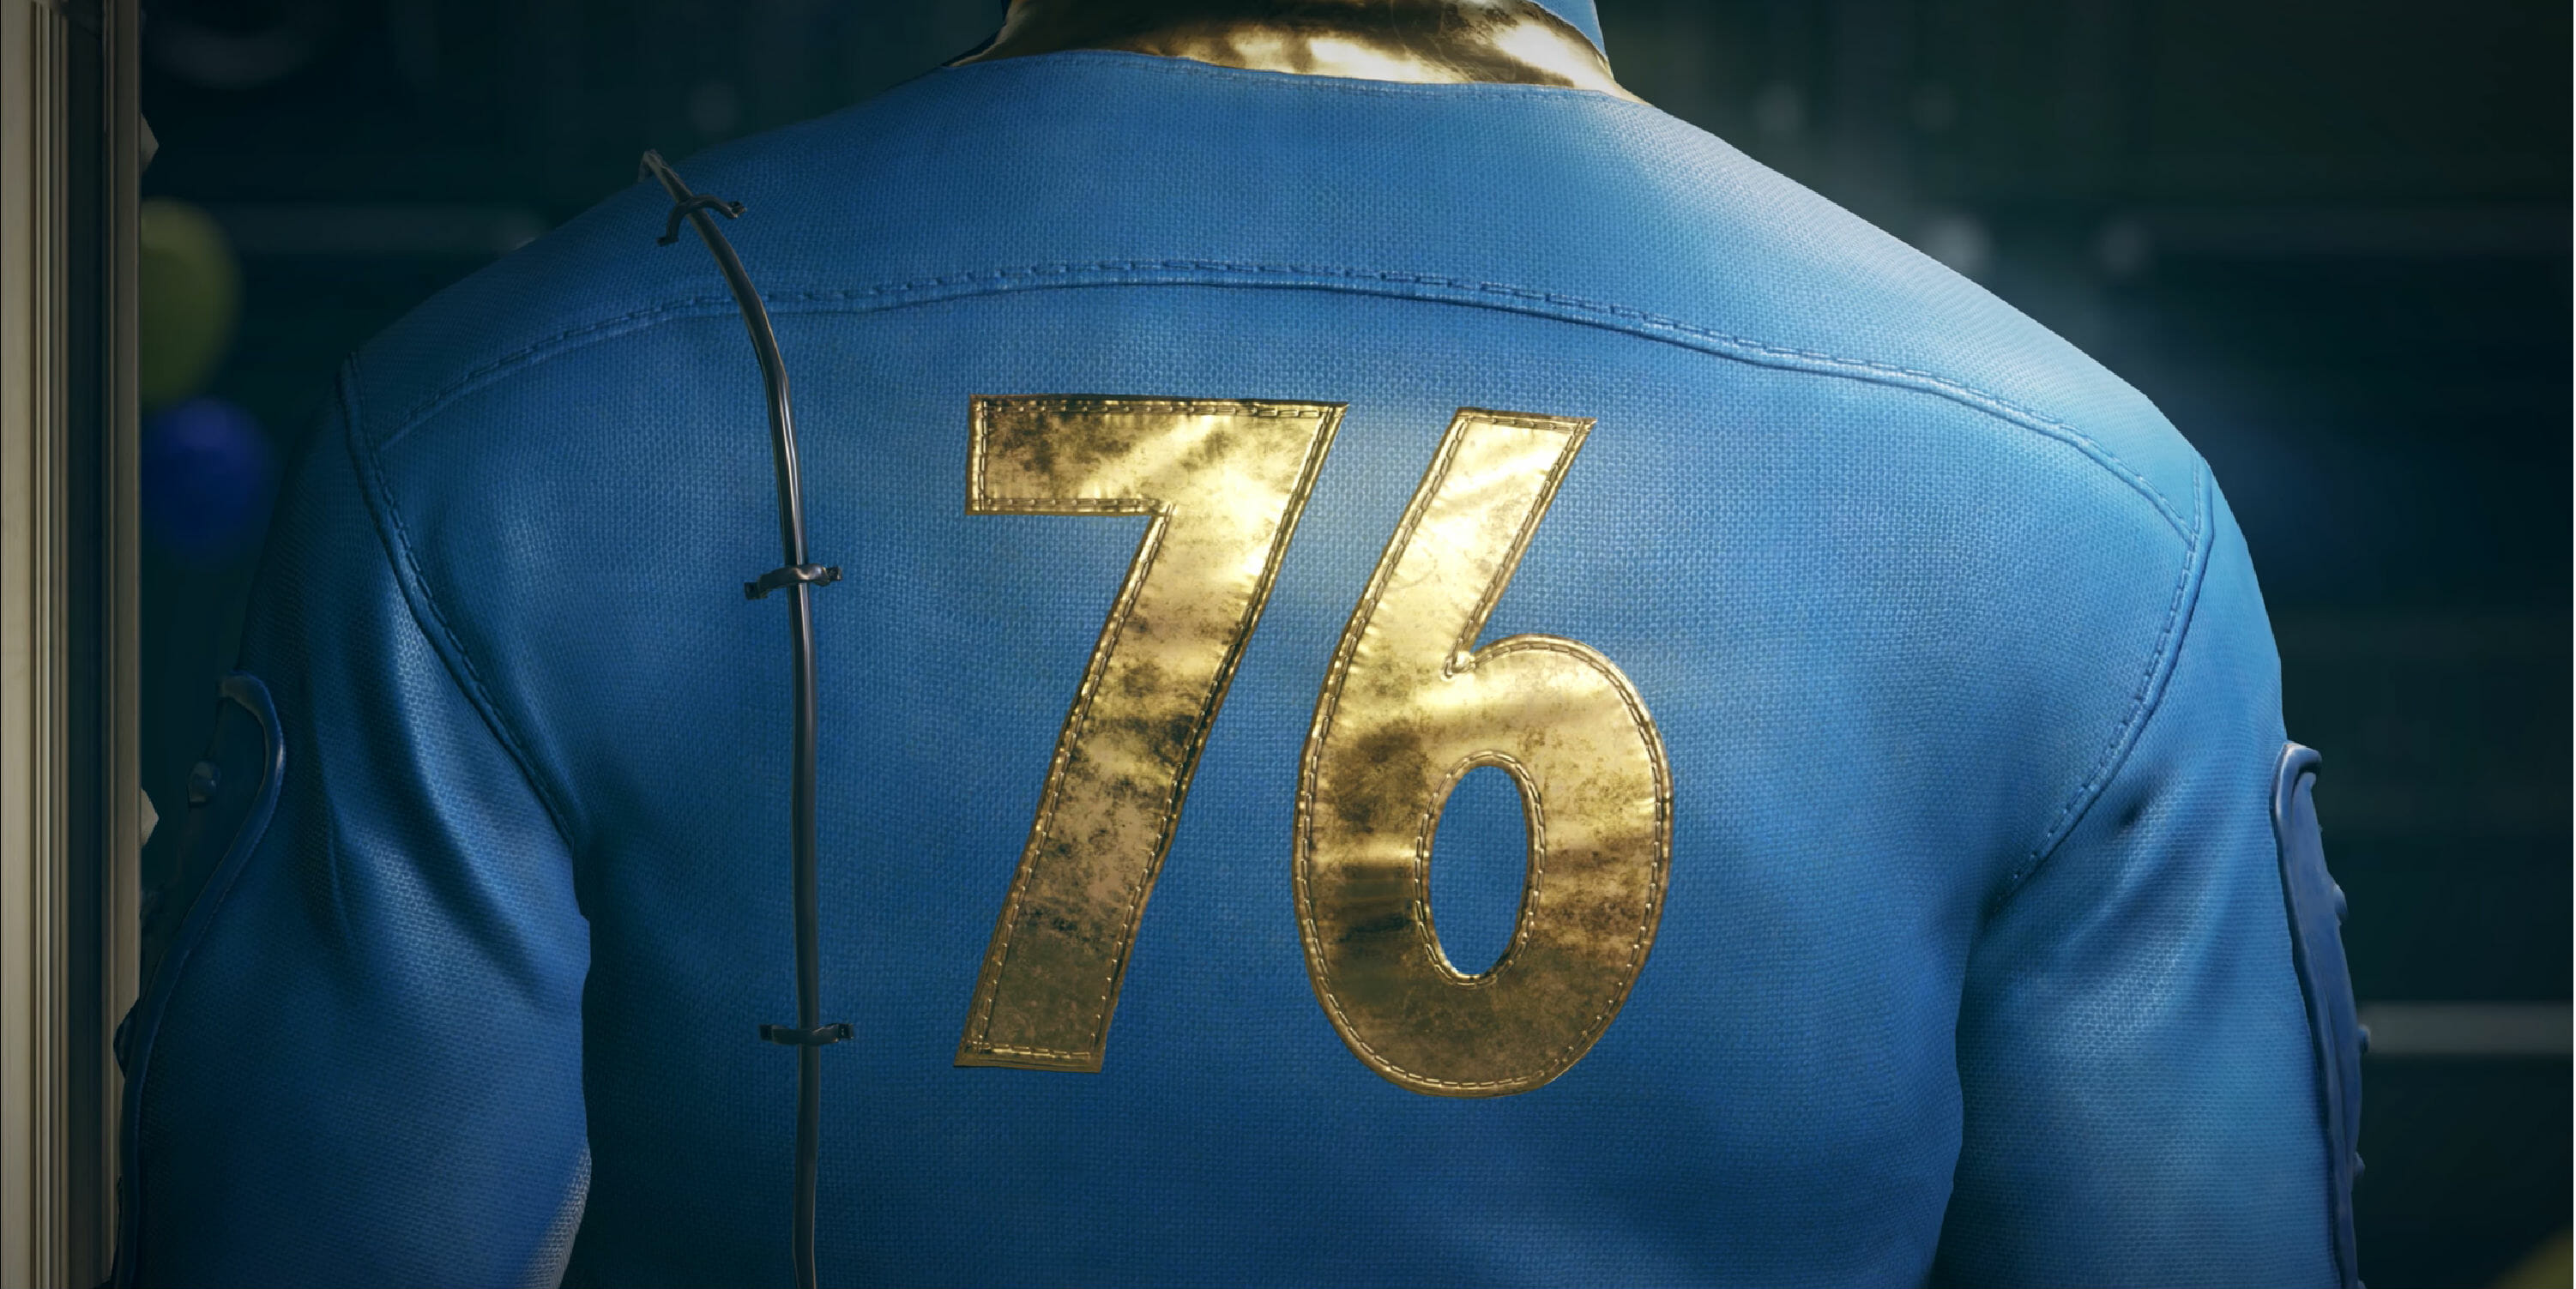 The Hundreds Wallpaper Iphone Fallout 76 Vault 76 And More Clues From New Trailer